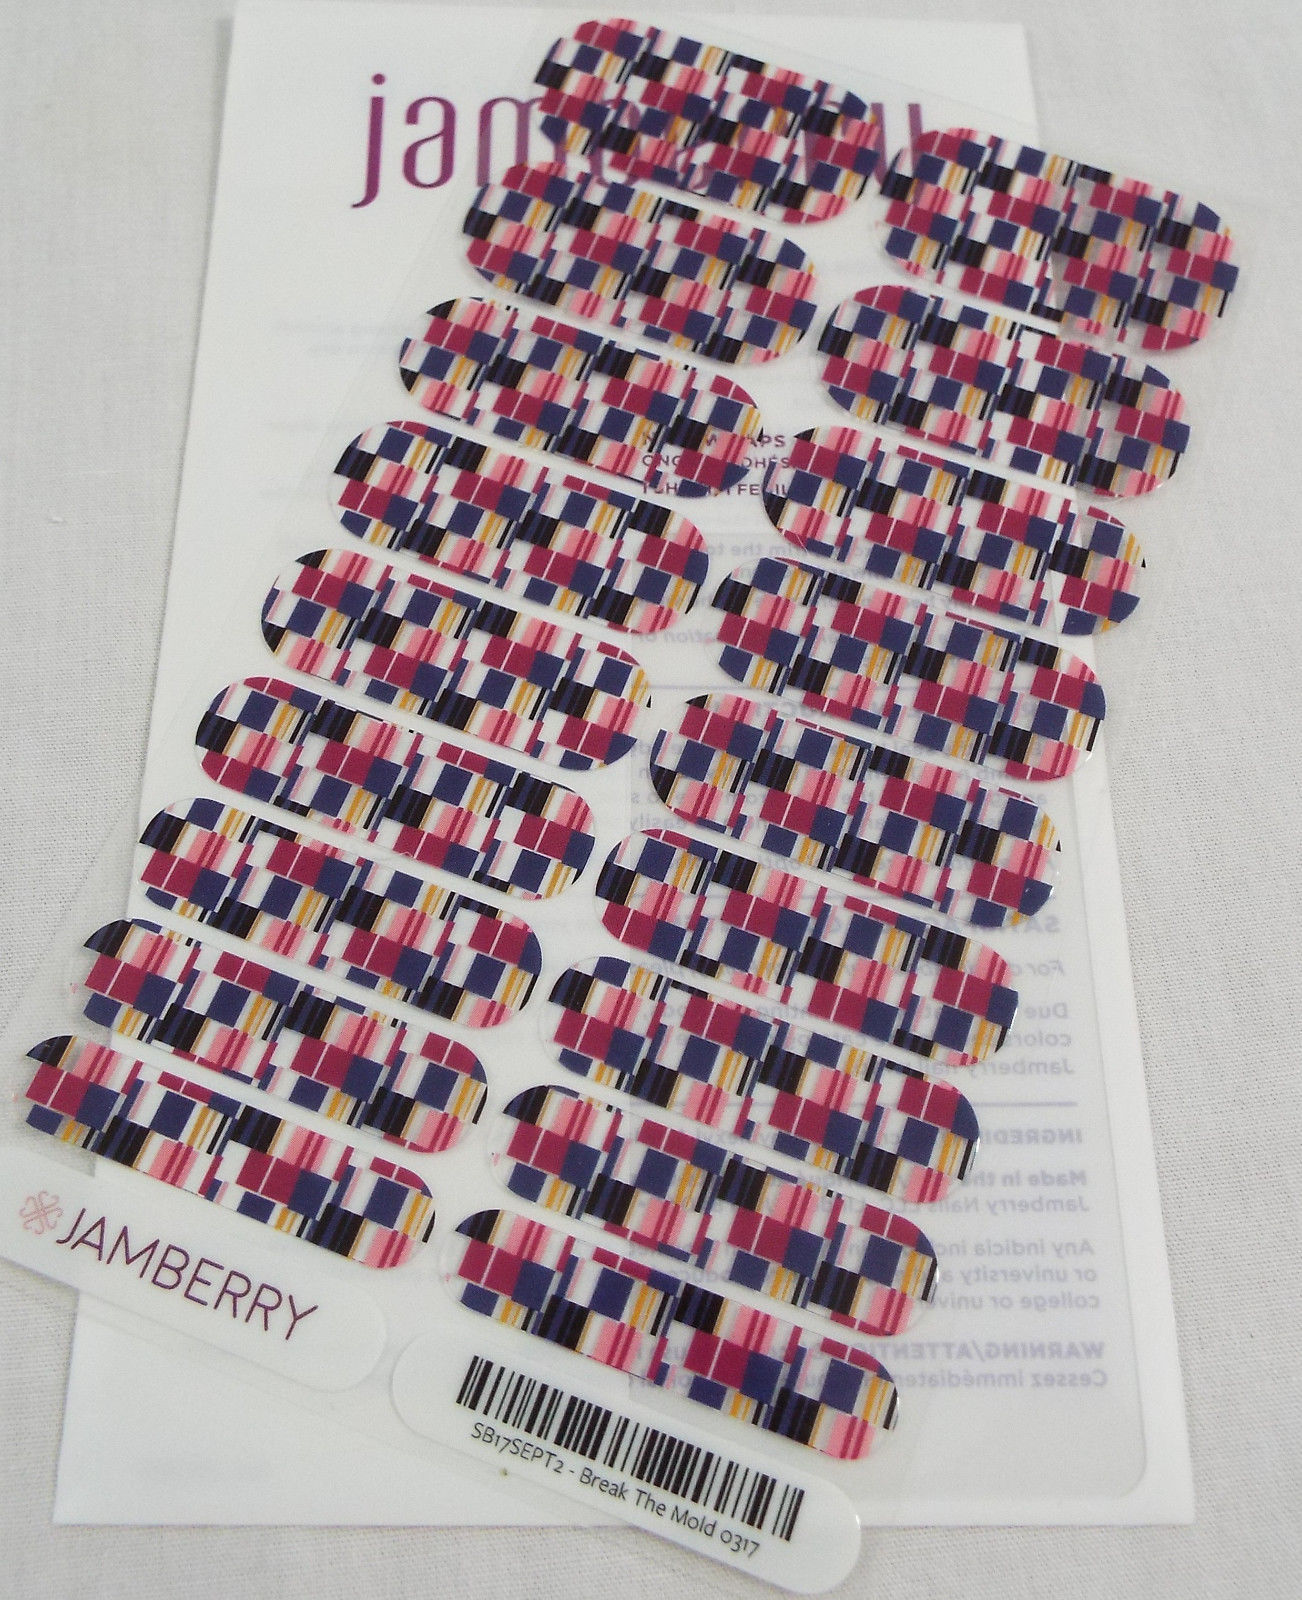 Jamberry Break The Mold 0317 StyleBox SB17SEPT2 Nail Wrap Full Sheet